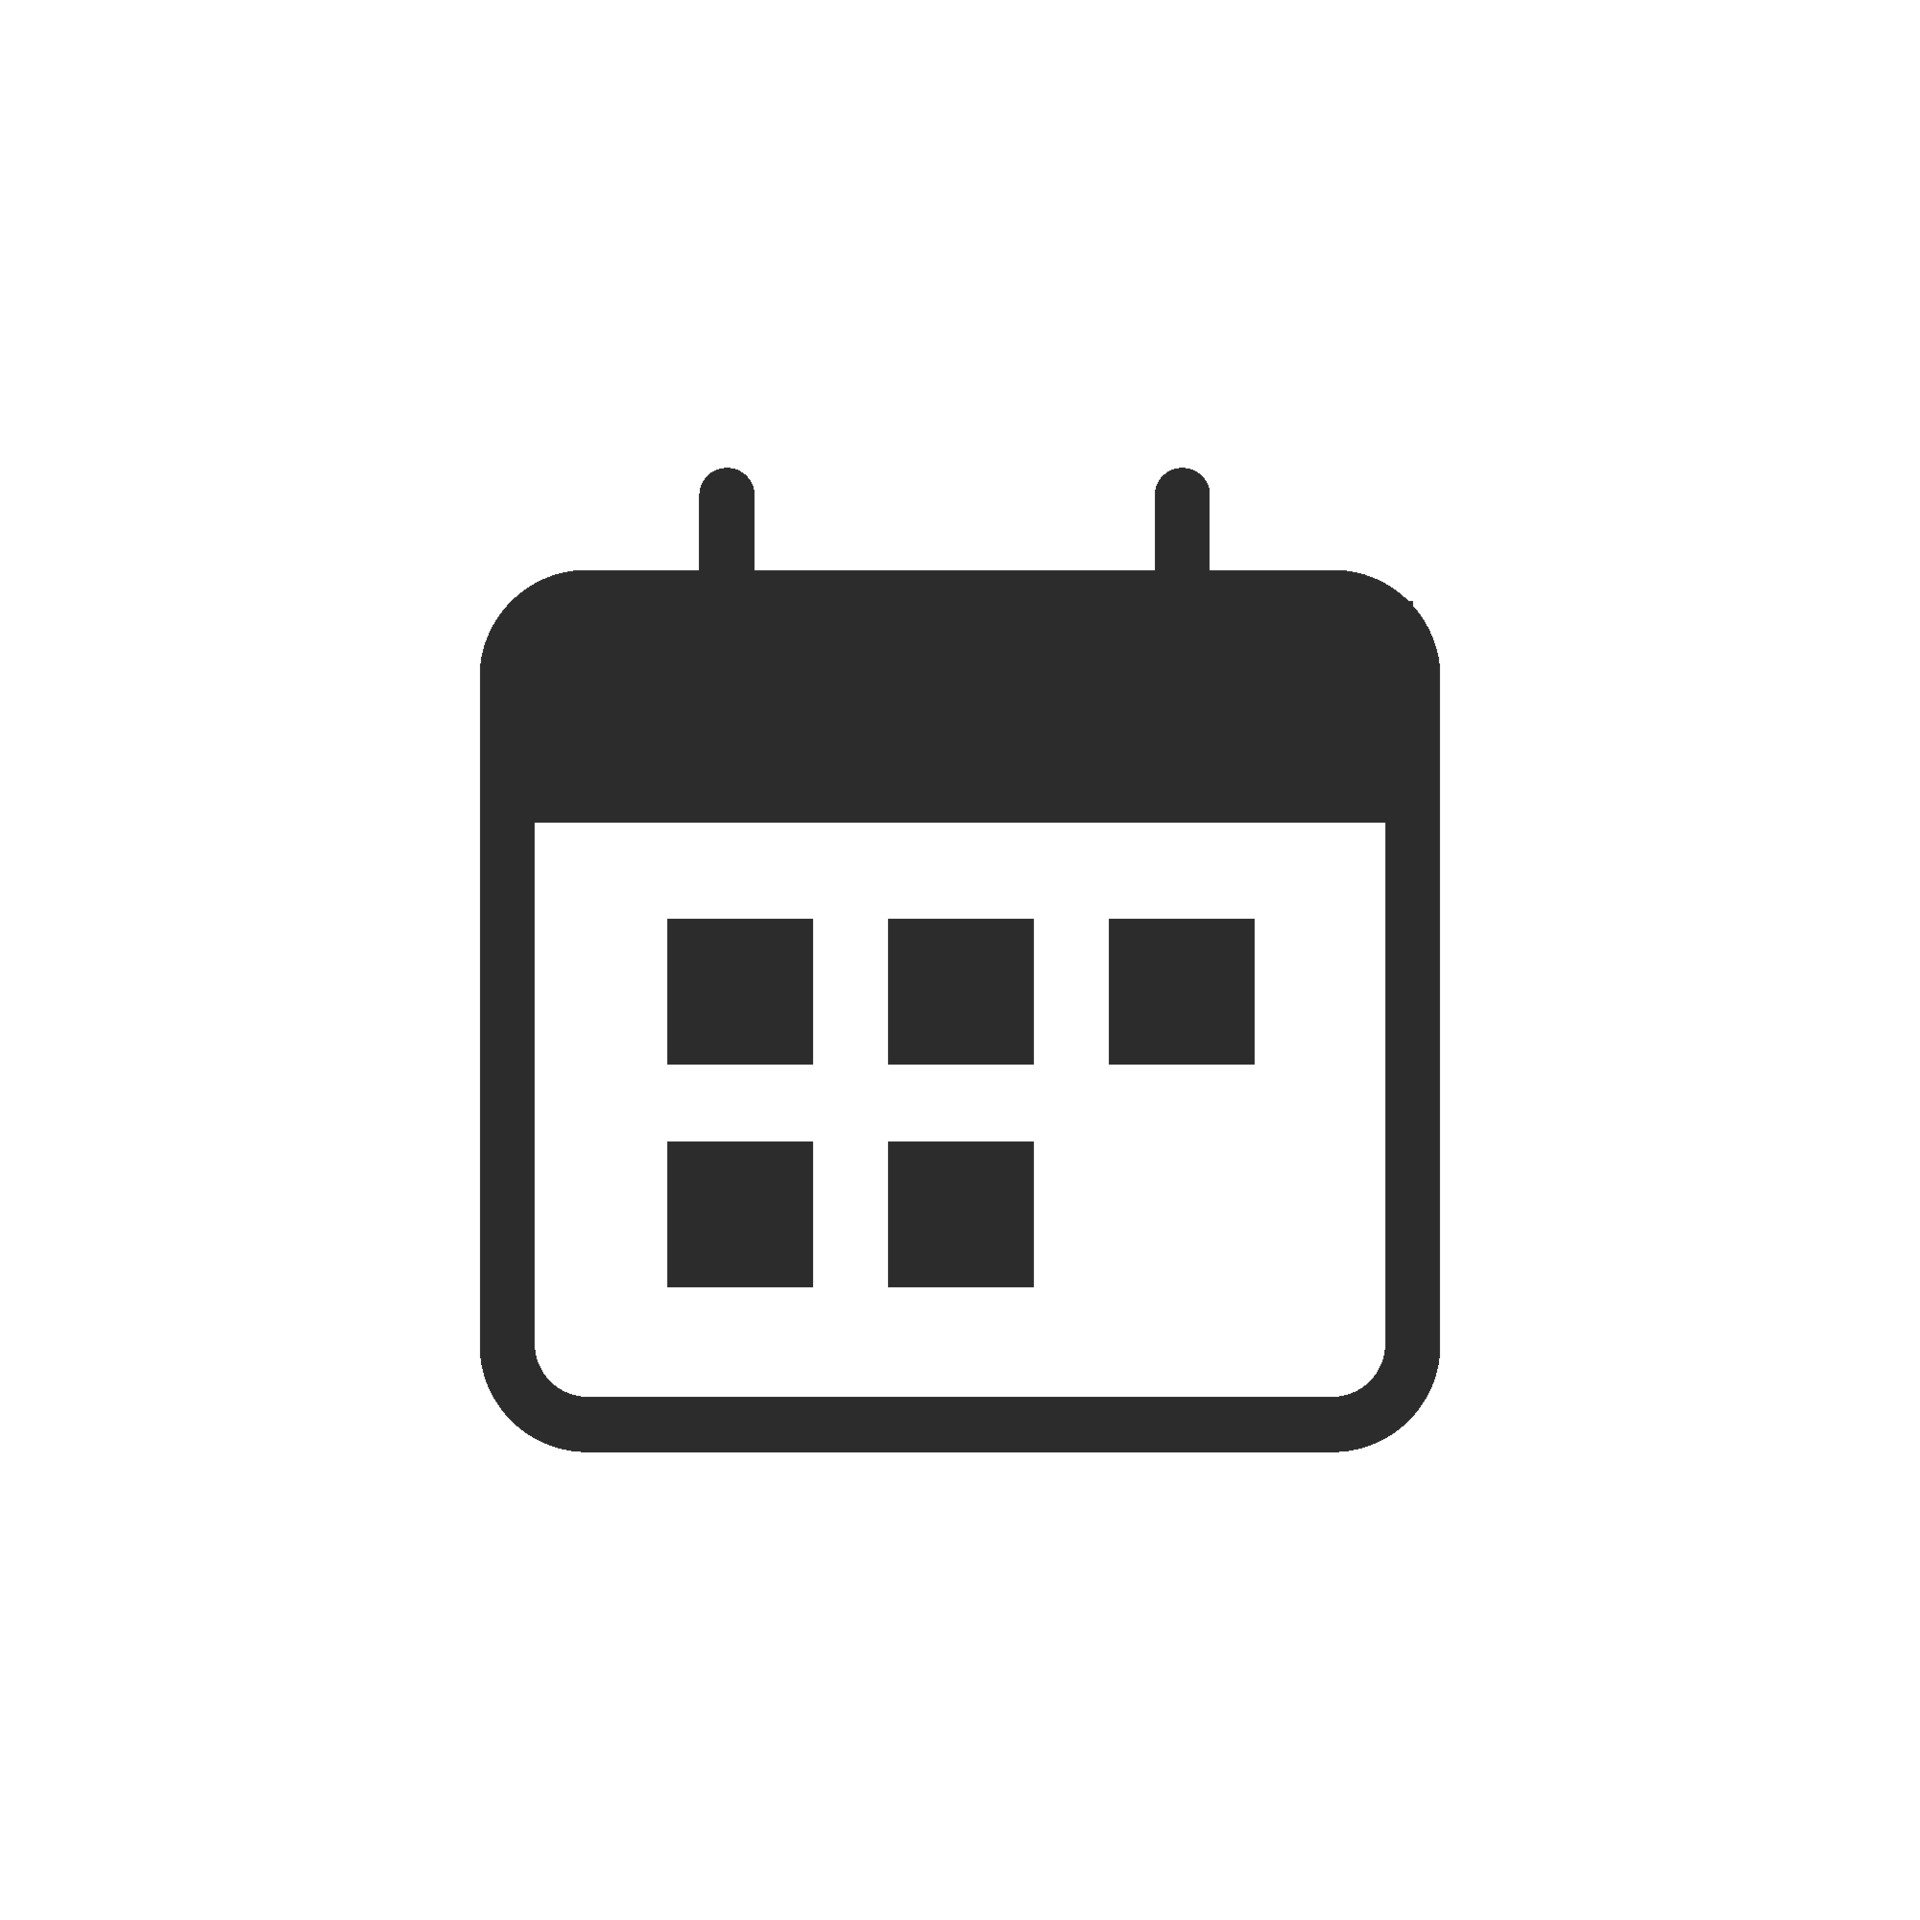 calendar-icon-flat-style-isolated-on-white-background-free-vector